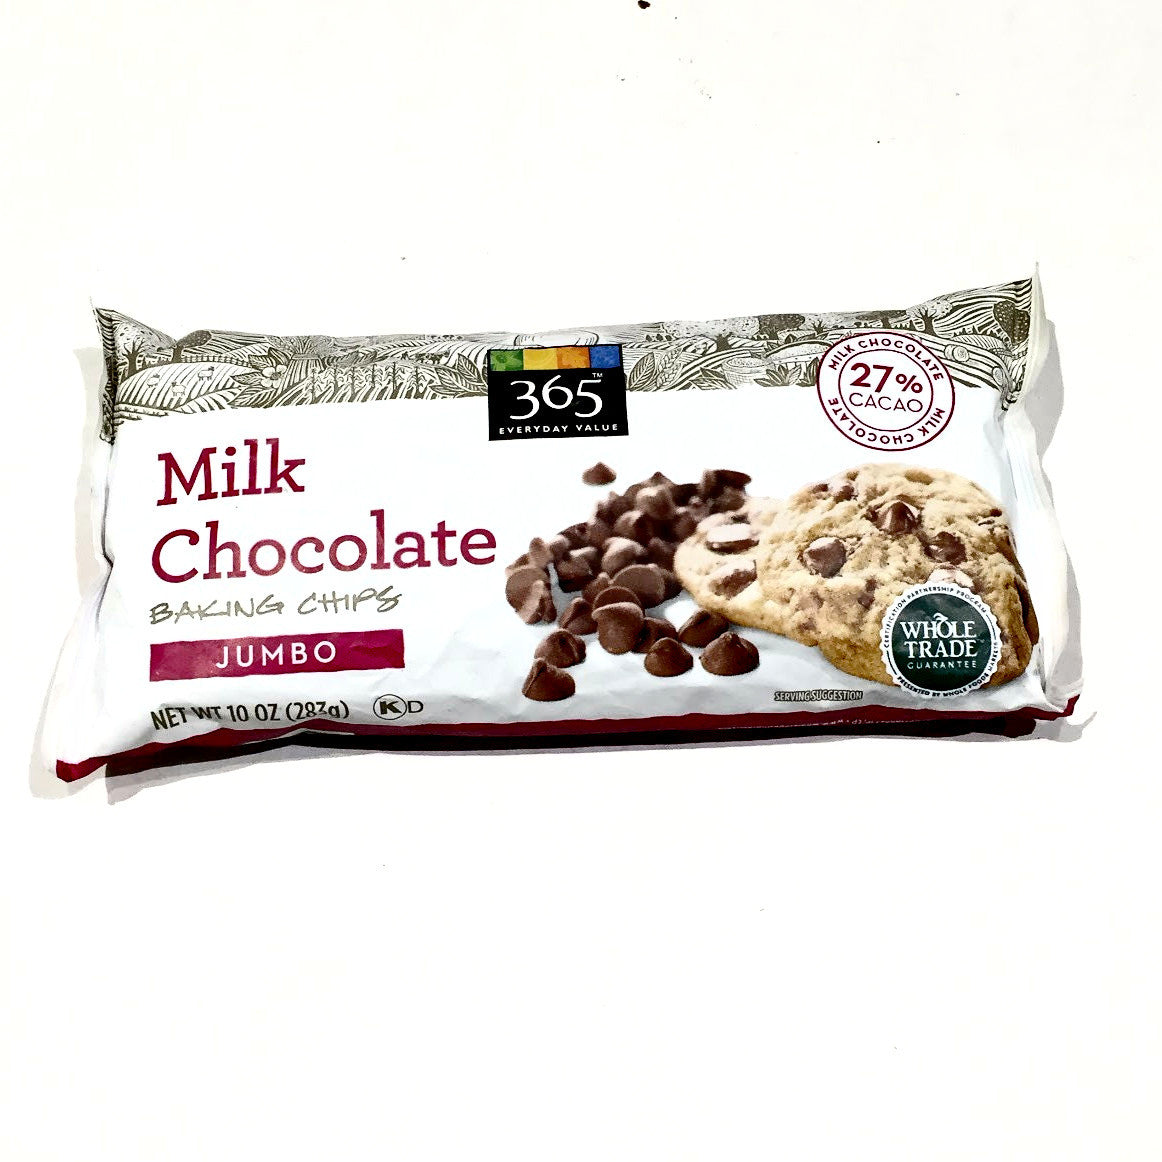 365 Everyday Value Milk Chocolate Baking Chips (Jumbo) - 10 oz